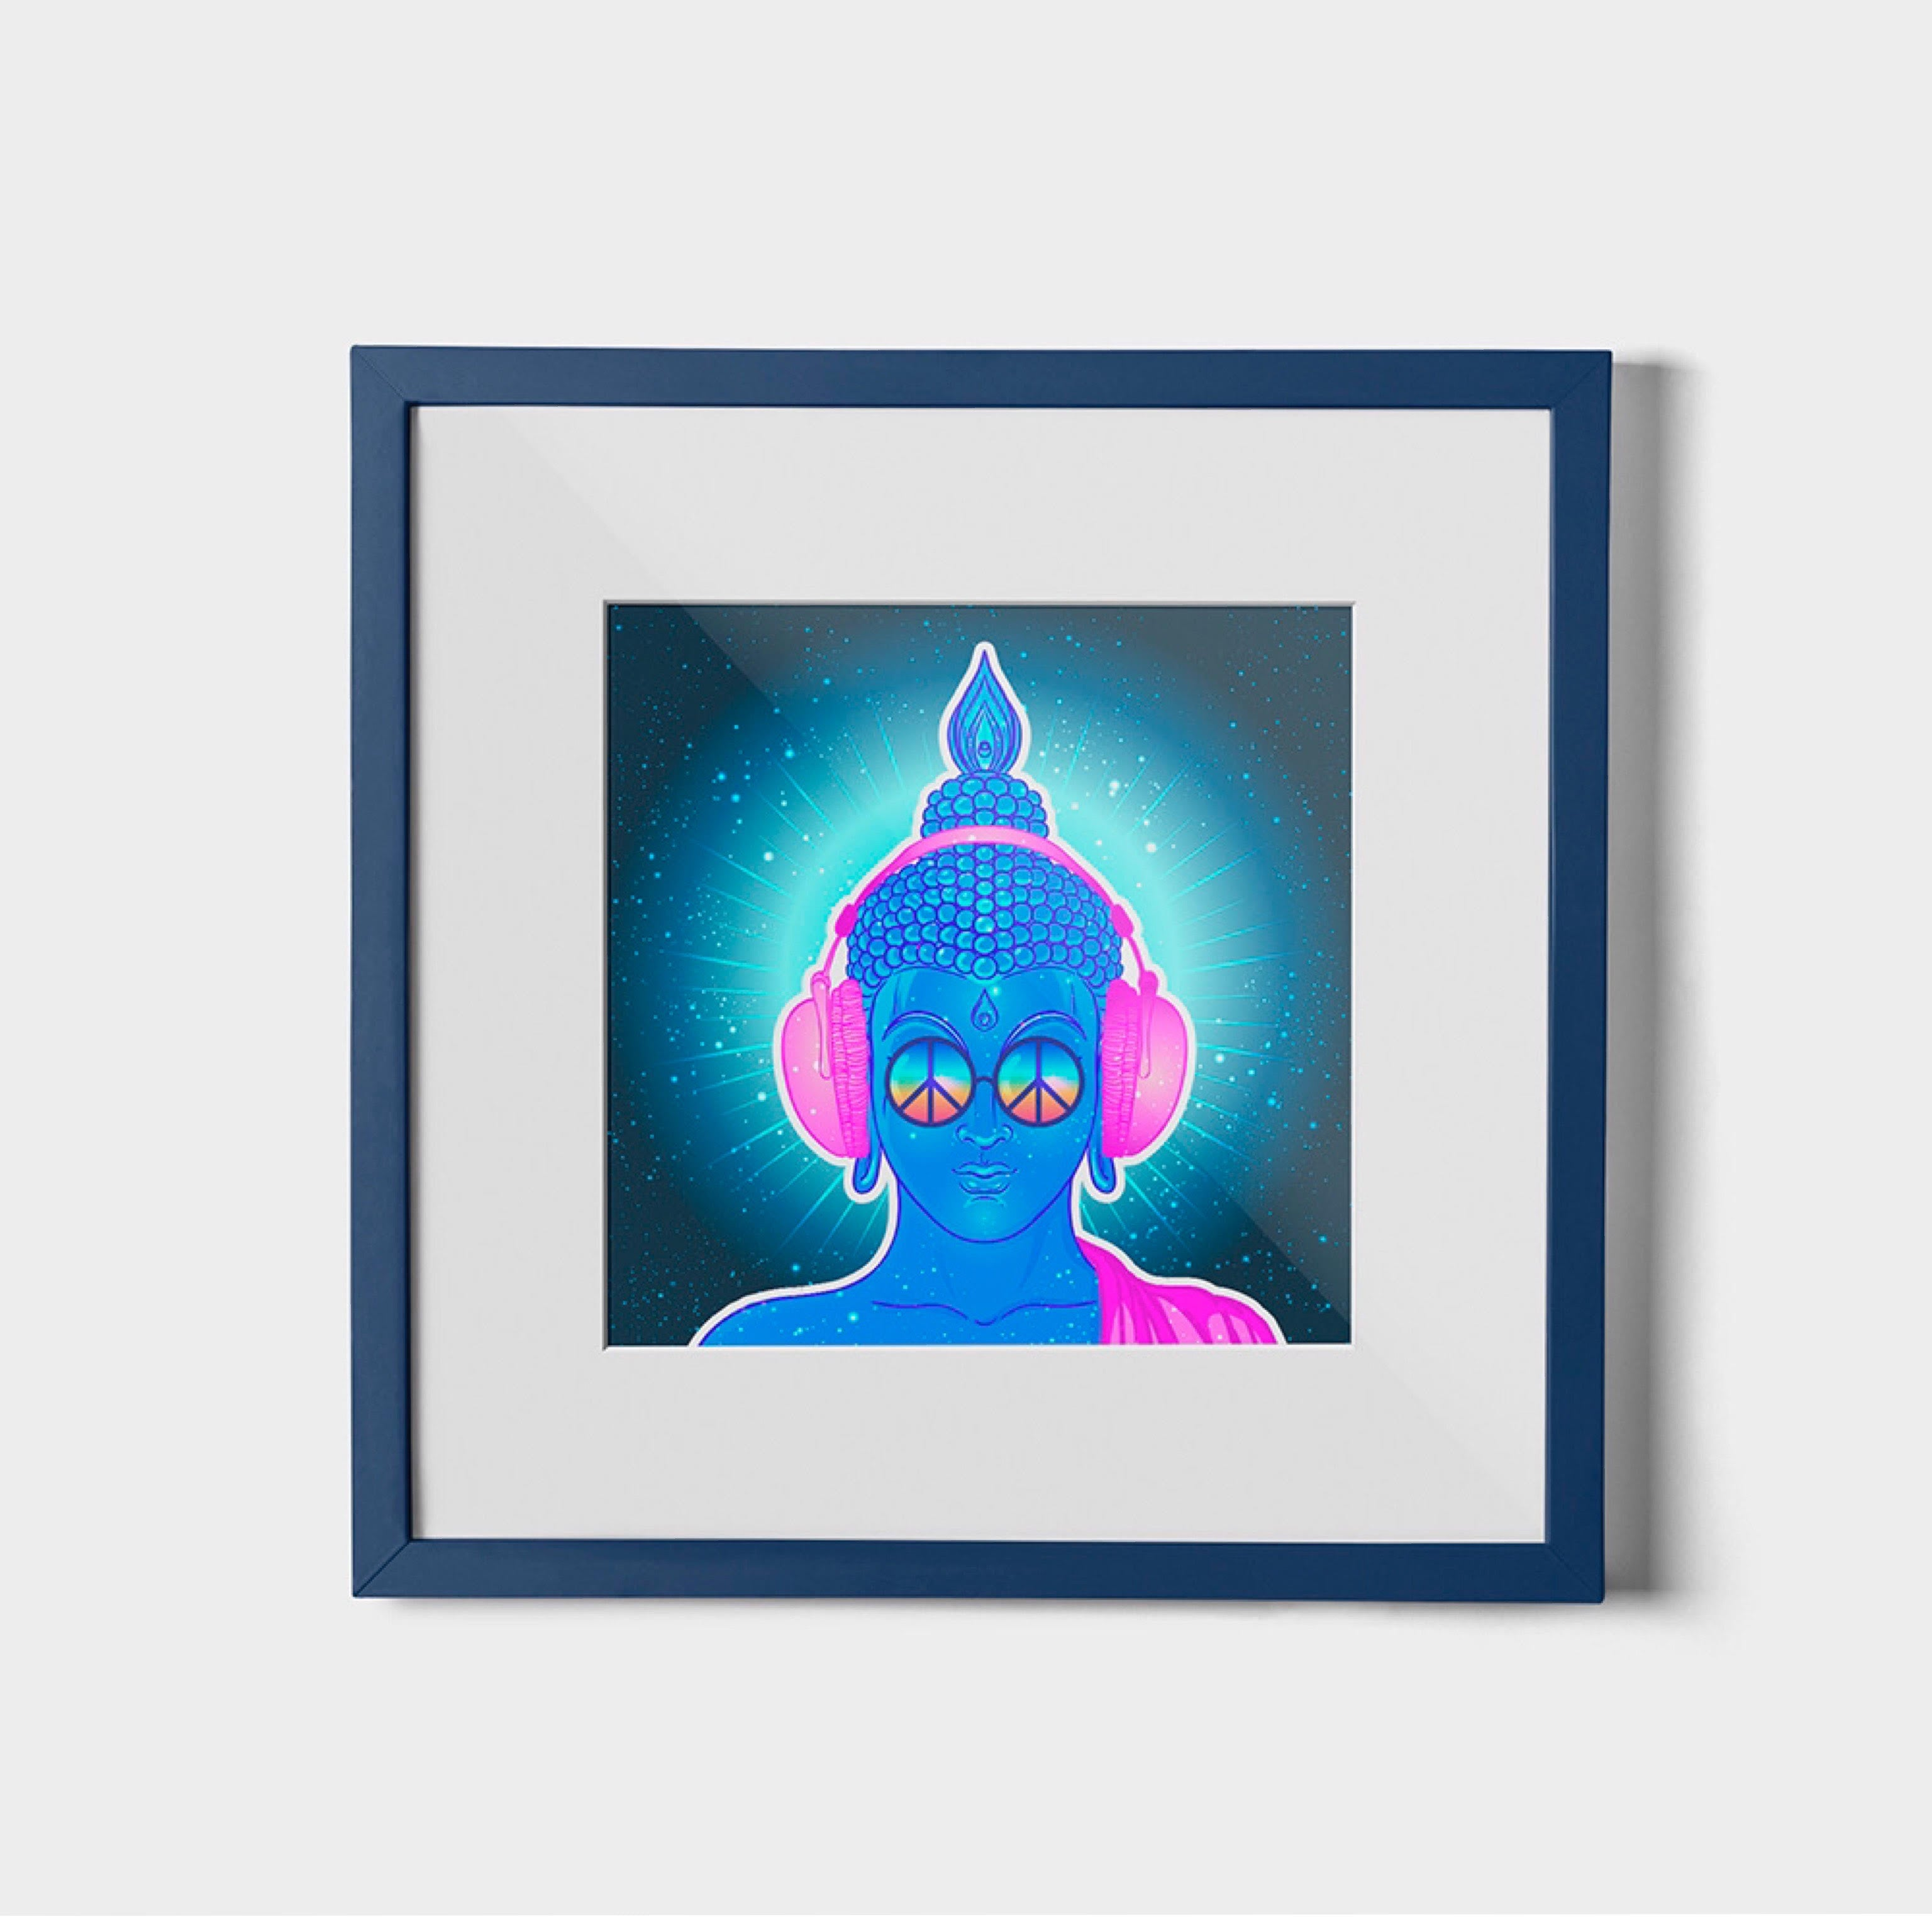 Inner Peace - W (Art Prints) Print Standard ARtscapes-AR - ARtscapes